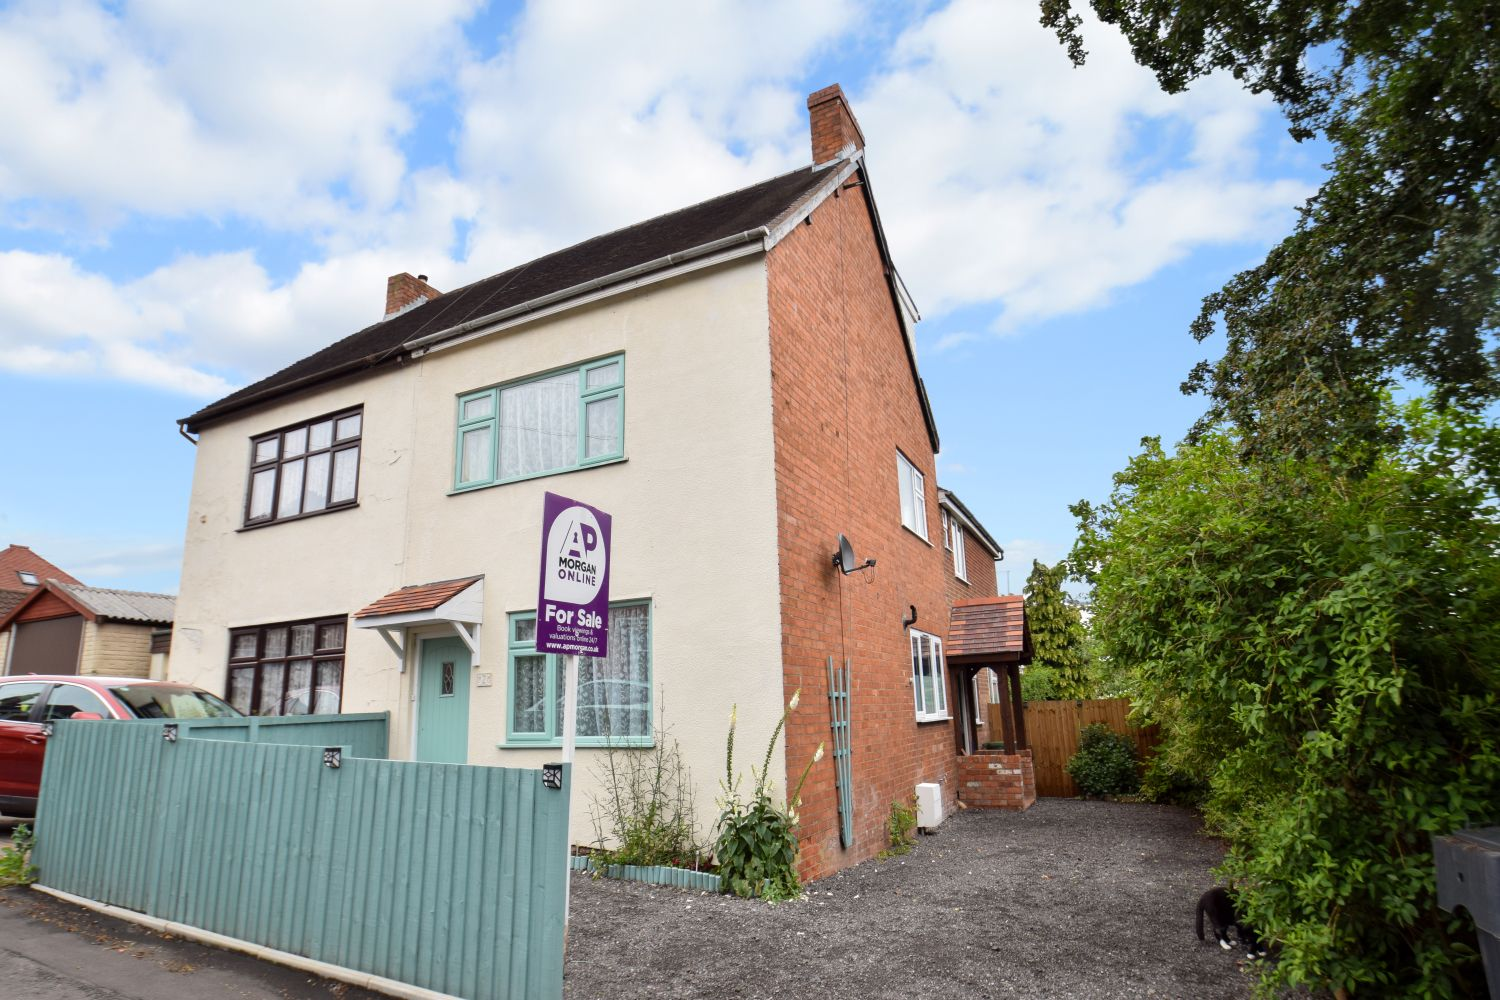 4 bed semi-detached for sale in Upland Grove, Bromsgrove, B61 - Property Image 1